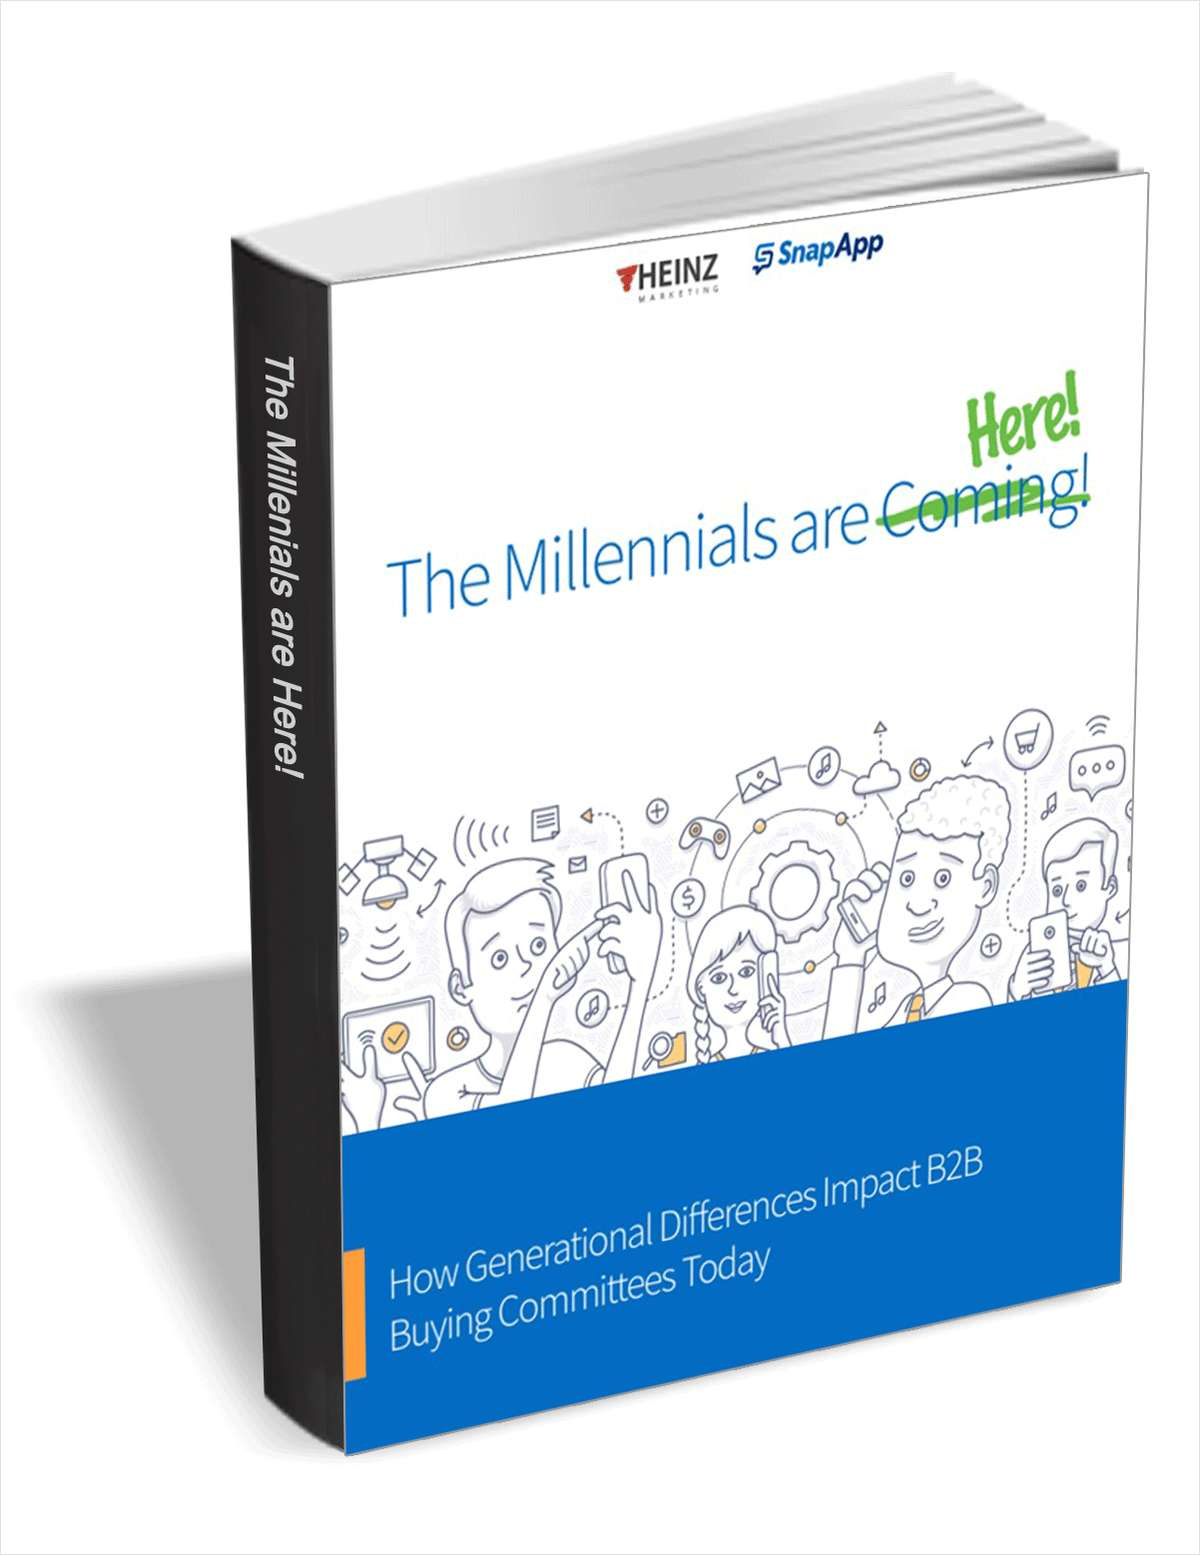 The Millennials are Here - How Generational Differences Impact B2B Buying Committees Today